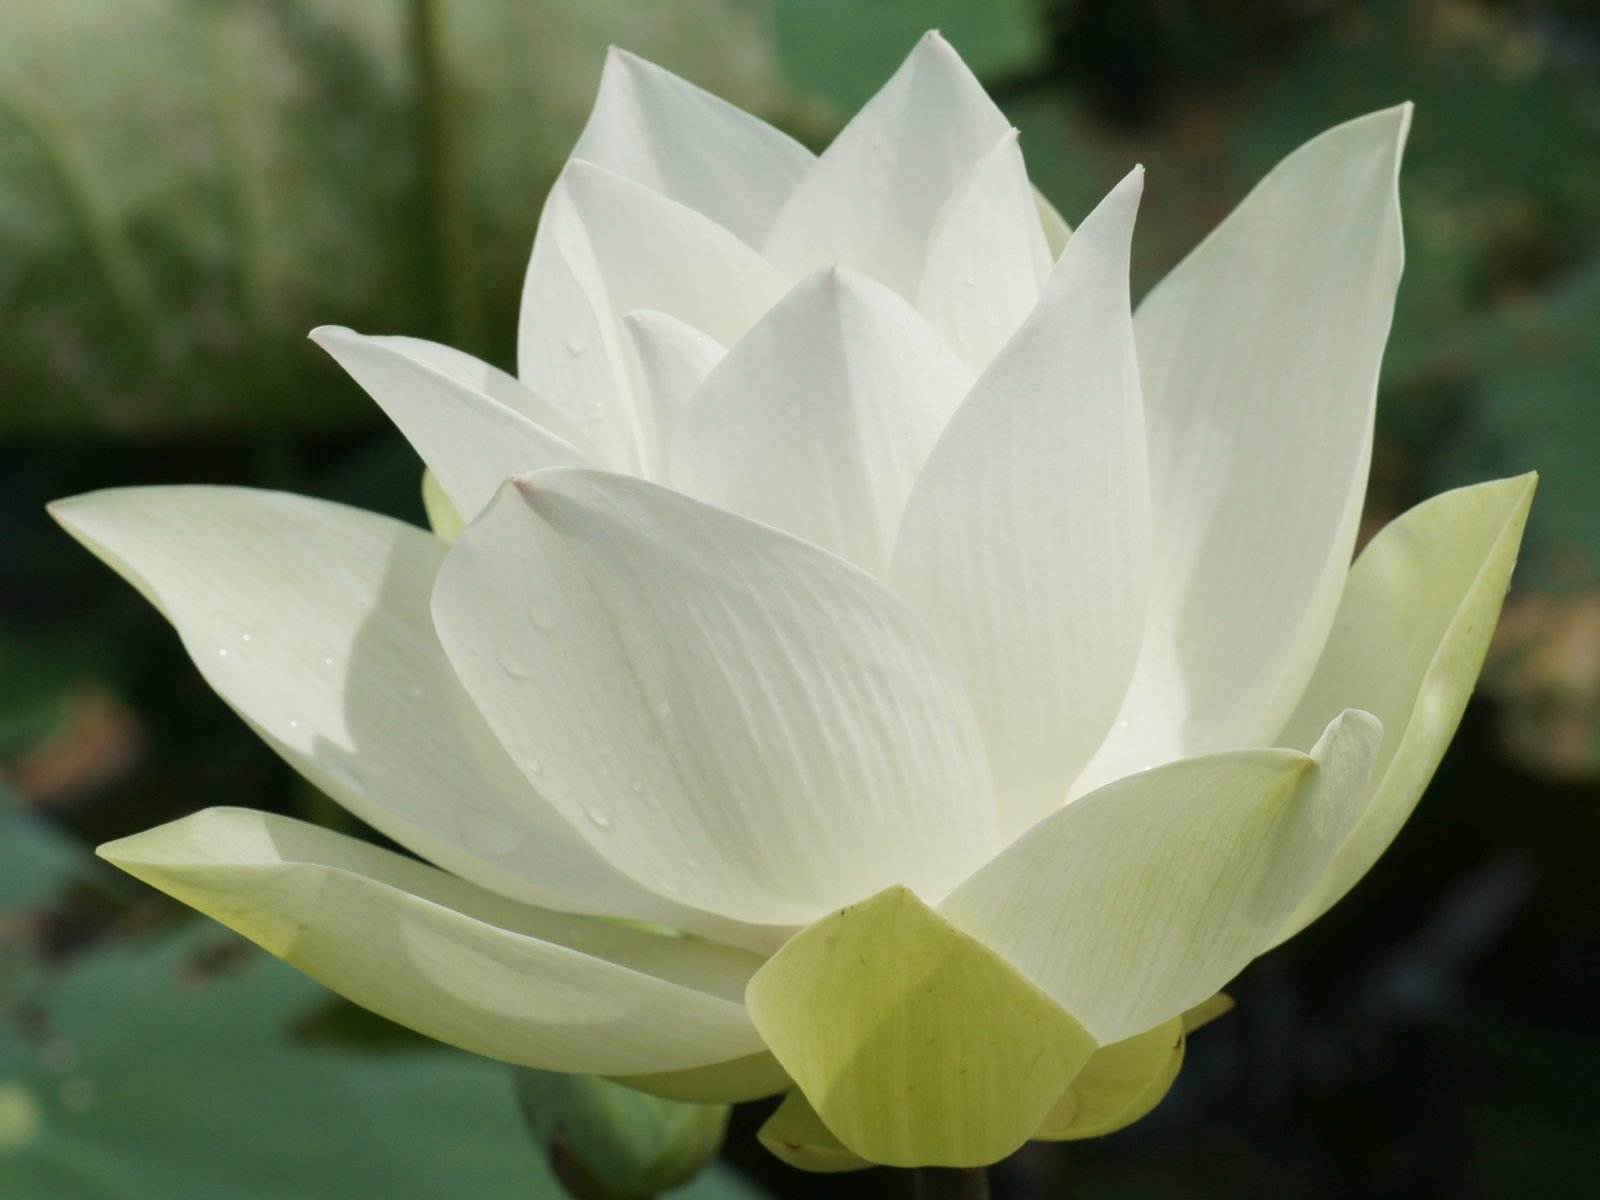 White lotus flower meaning and symbolism mythologian perhaps a large part of the reason that the white lotus was and is so revered in religious iconography is the colors symbolism as a blank canvas buycottarizona Choice Image